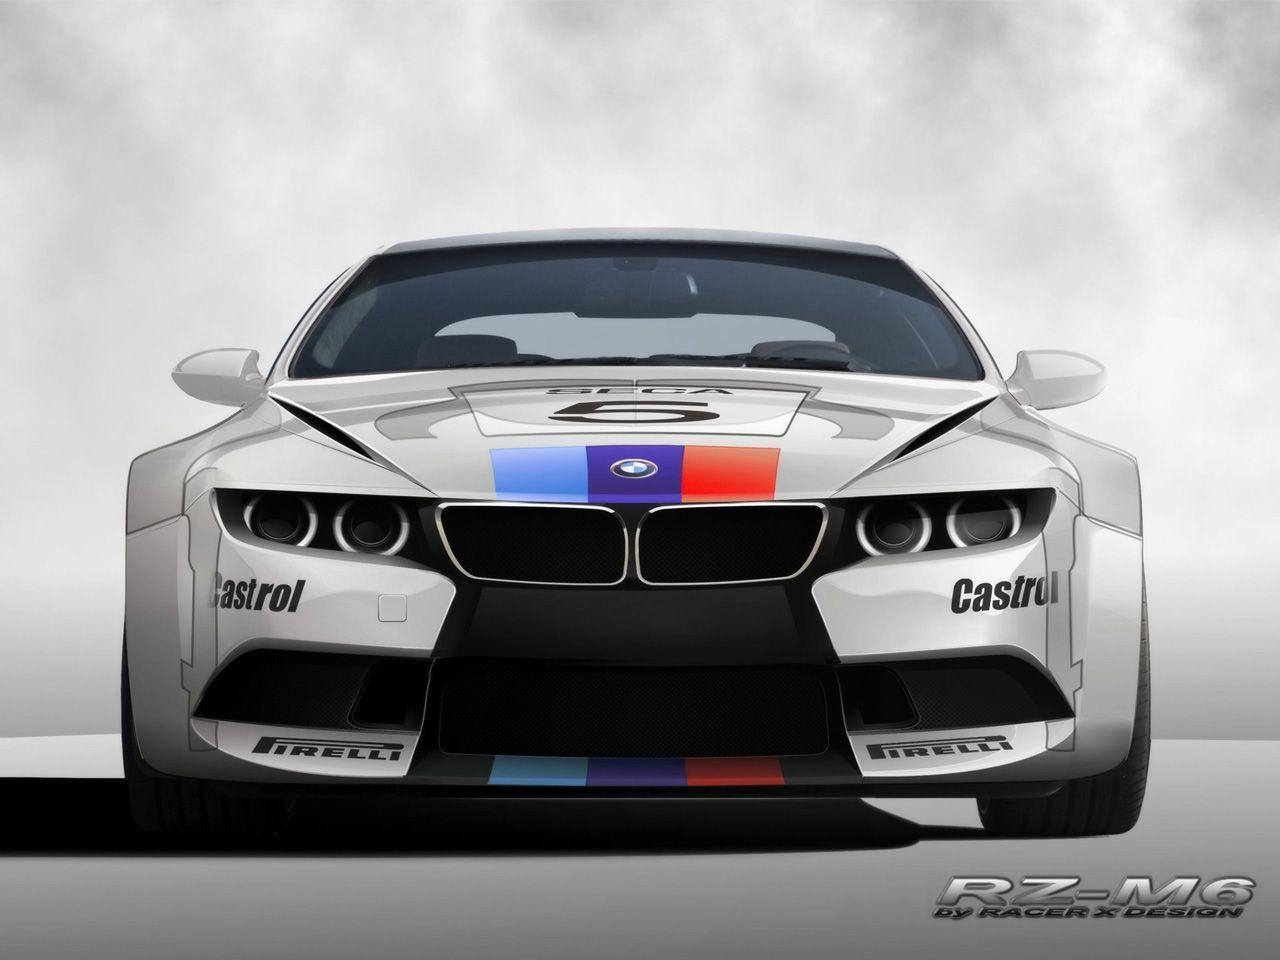 New Bmw Cars Hd Images ~ New Bmw Z4 2011 Car Wallpapers Hd Wallpapers